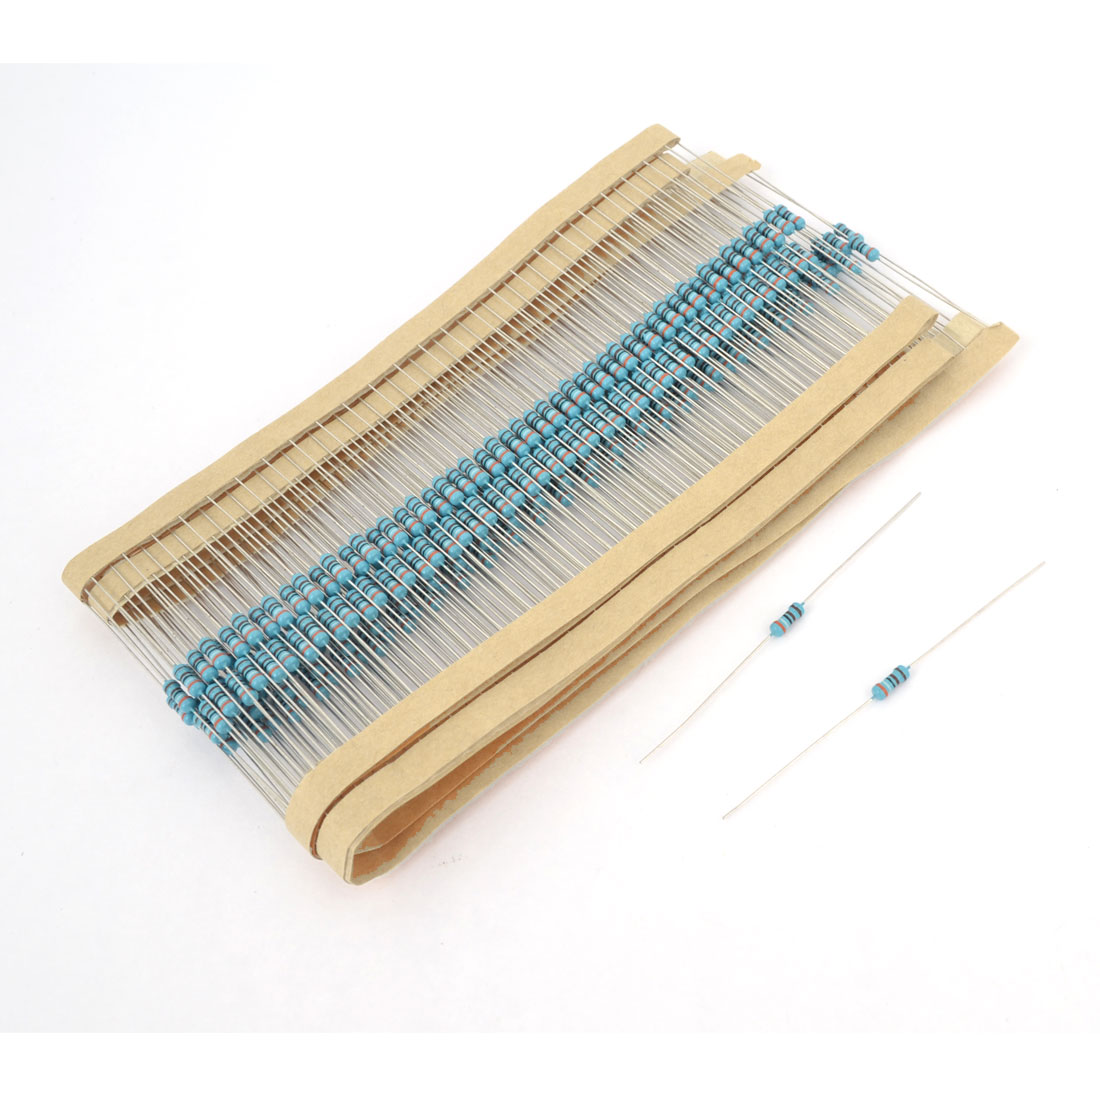 300pcs Axial Lead Through Hole 1/4W 1% Tolerance 3.9K Ohm Metal Film Resistor